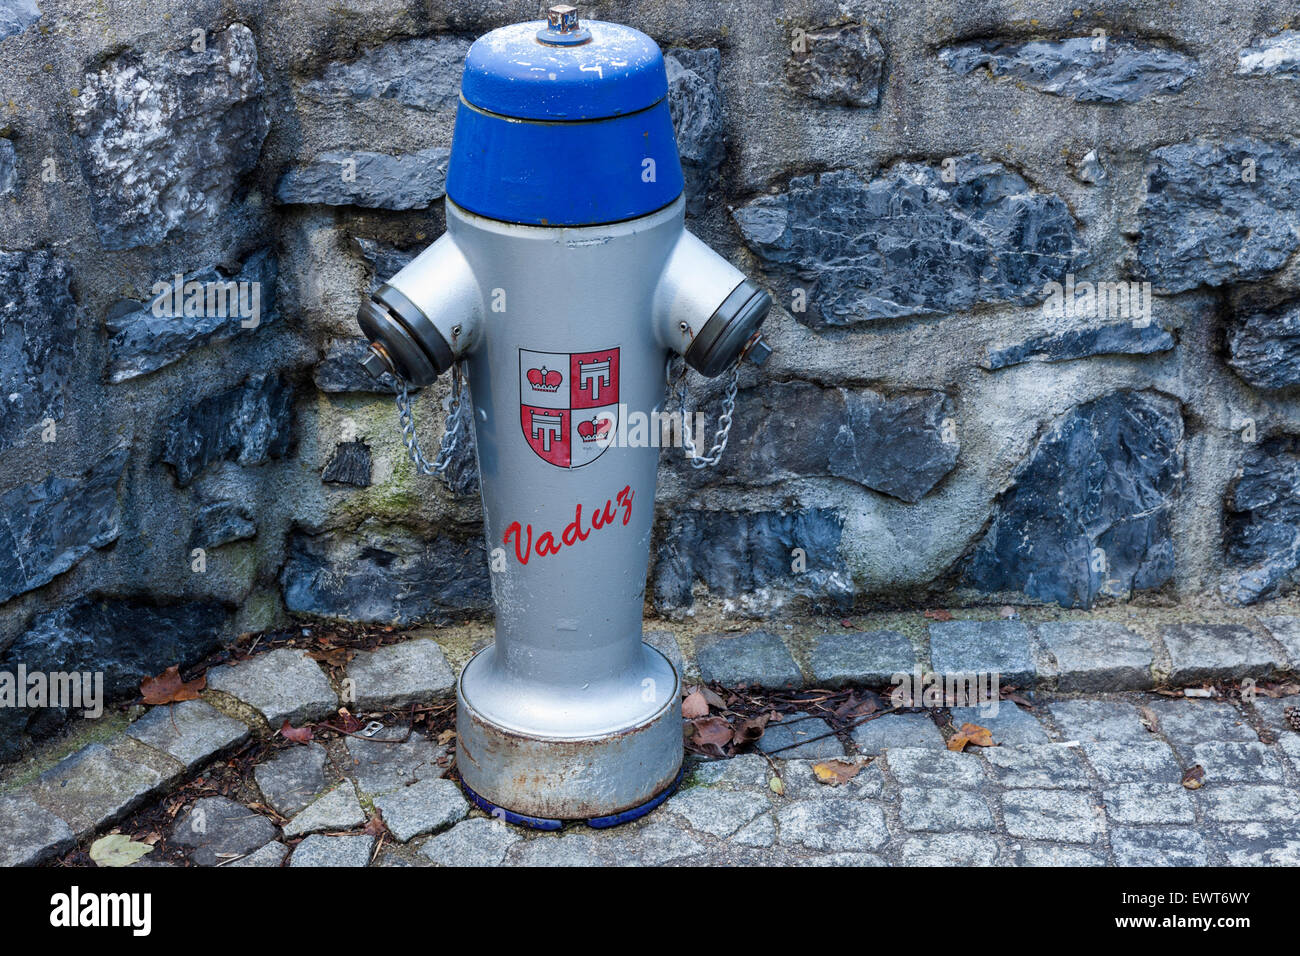 Fire hydrant in Vaduz, Liechtenstein, Europe. - Stock Image